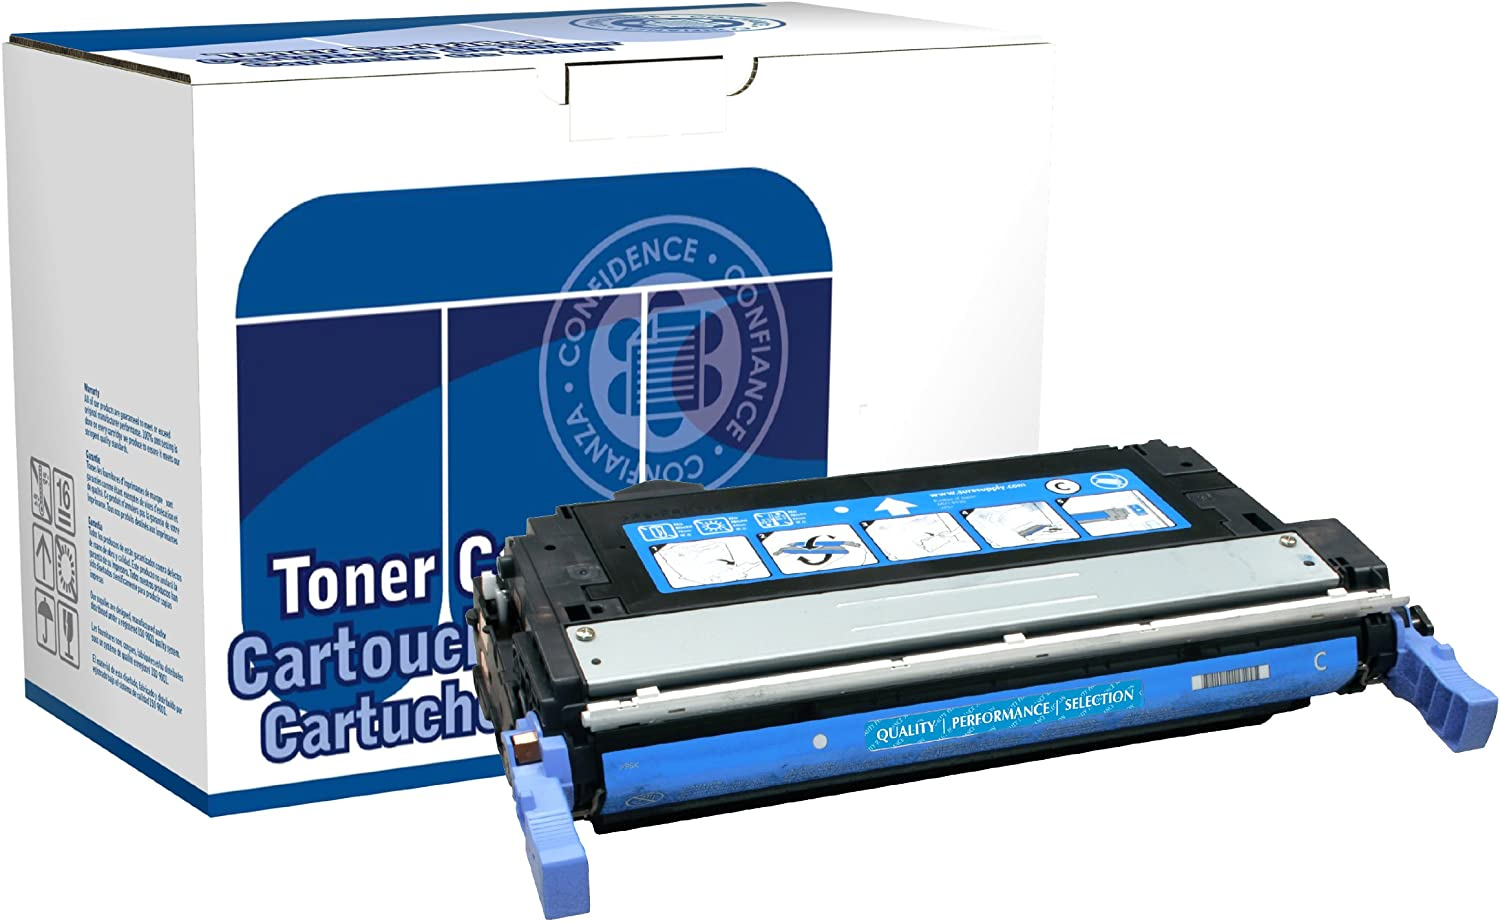 Popular standard Dataproducts DPC4730C Challenge the lowest price of Japan Remanufactured Cartridge Toner Replacement